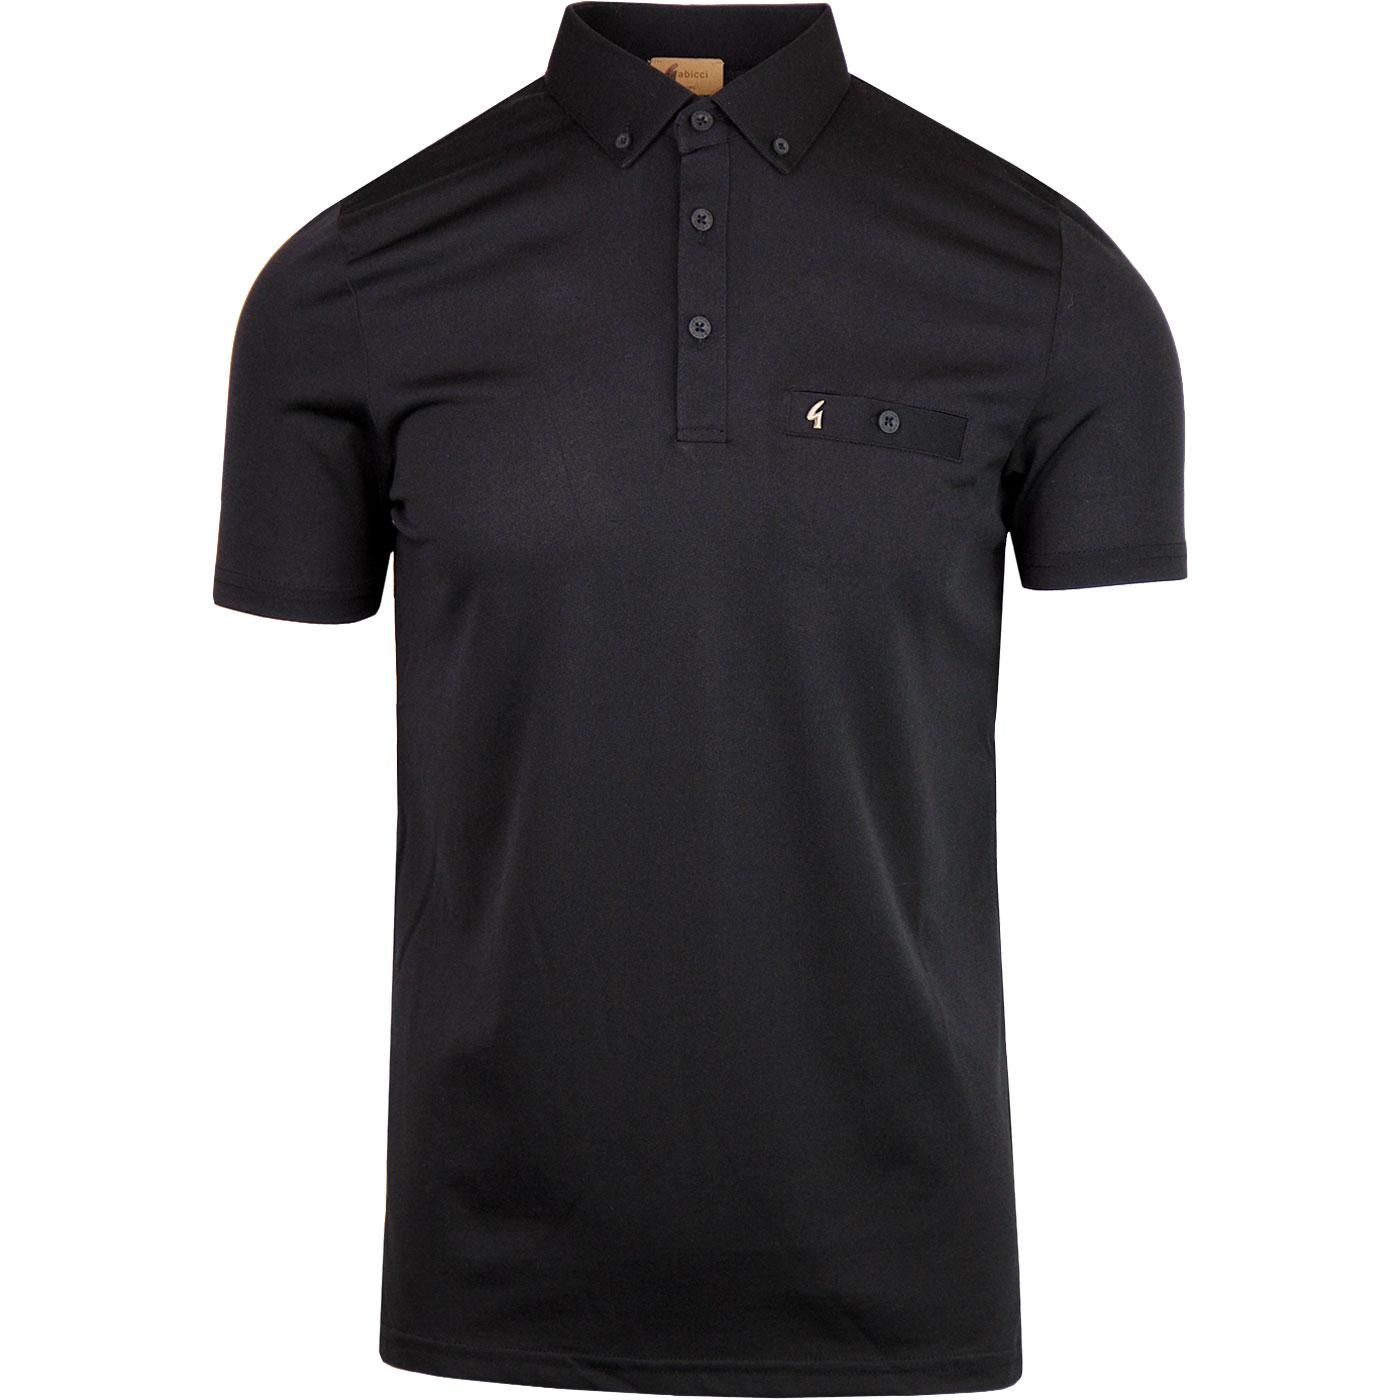 Ladro GABICCI VINTAGE Mod Button Down Polo BLACK